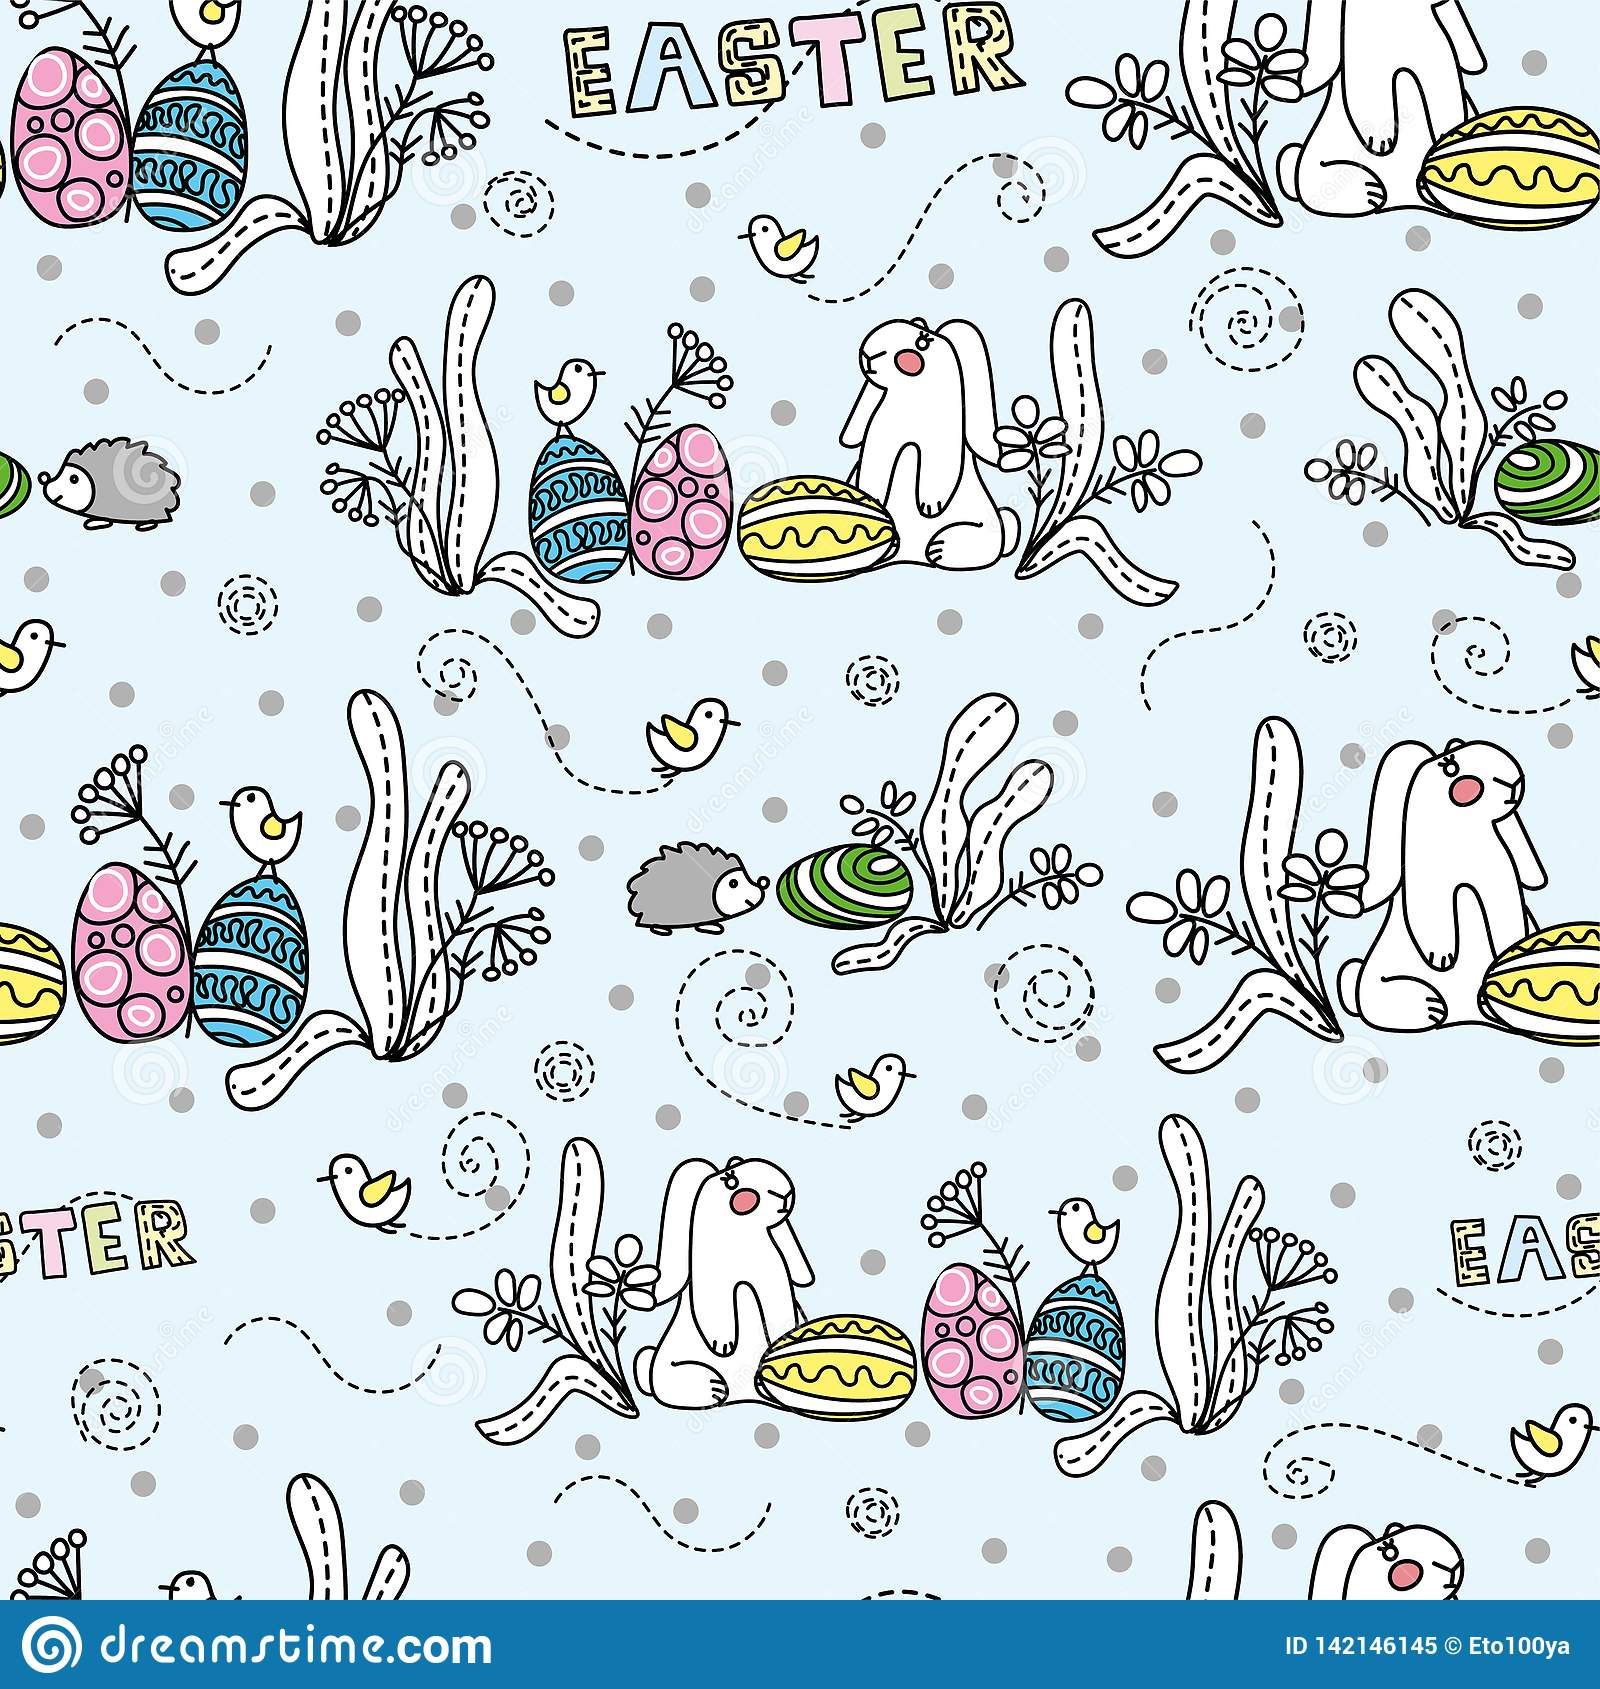 Rabbit with eggs under the bush. Easter. Seamless pattern.